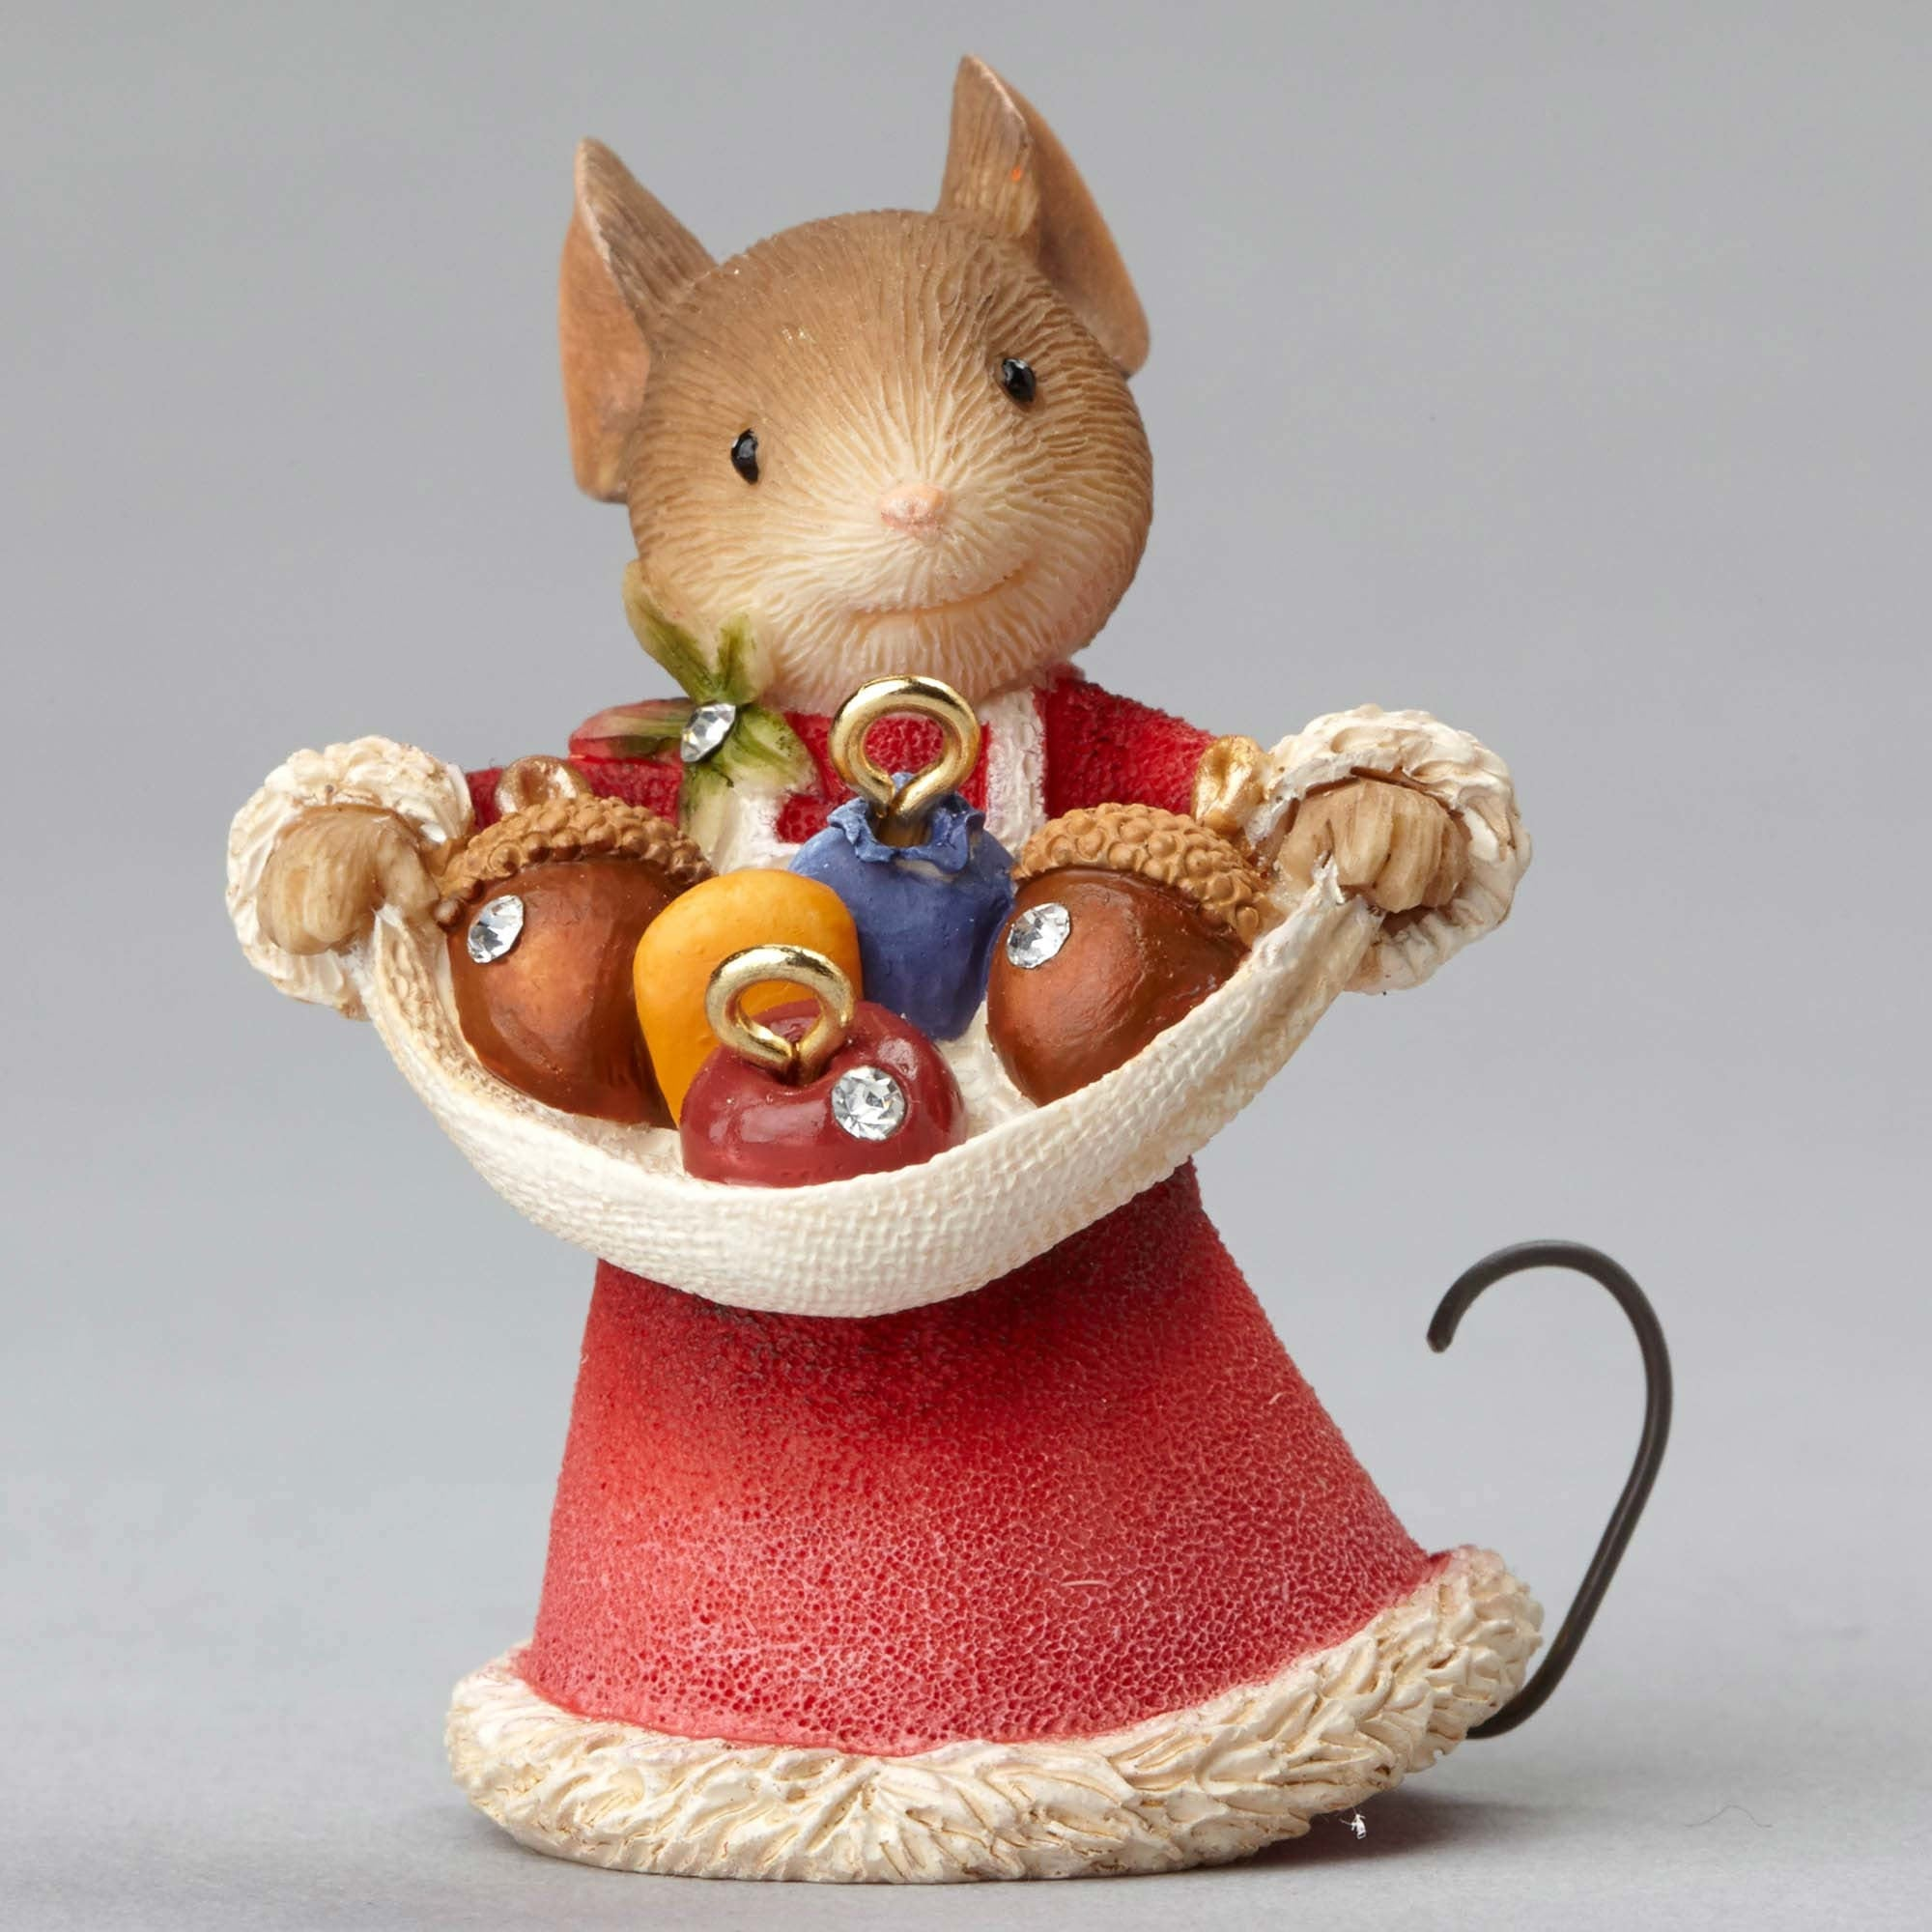 Mouse with Acorn Ornaments Figurine | Heart of Christmas ...